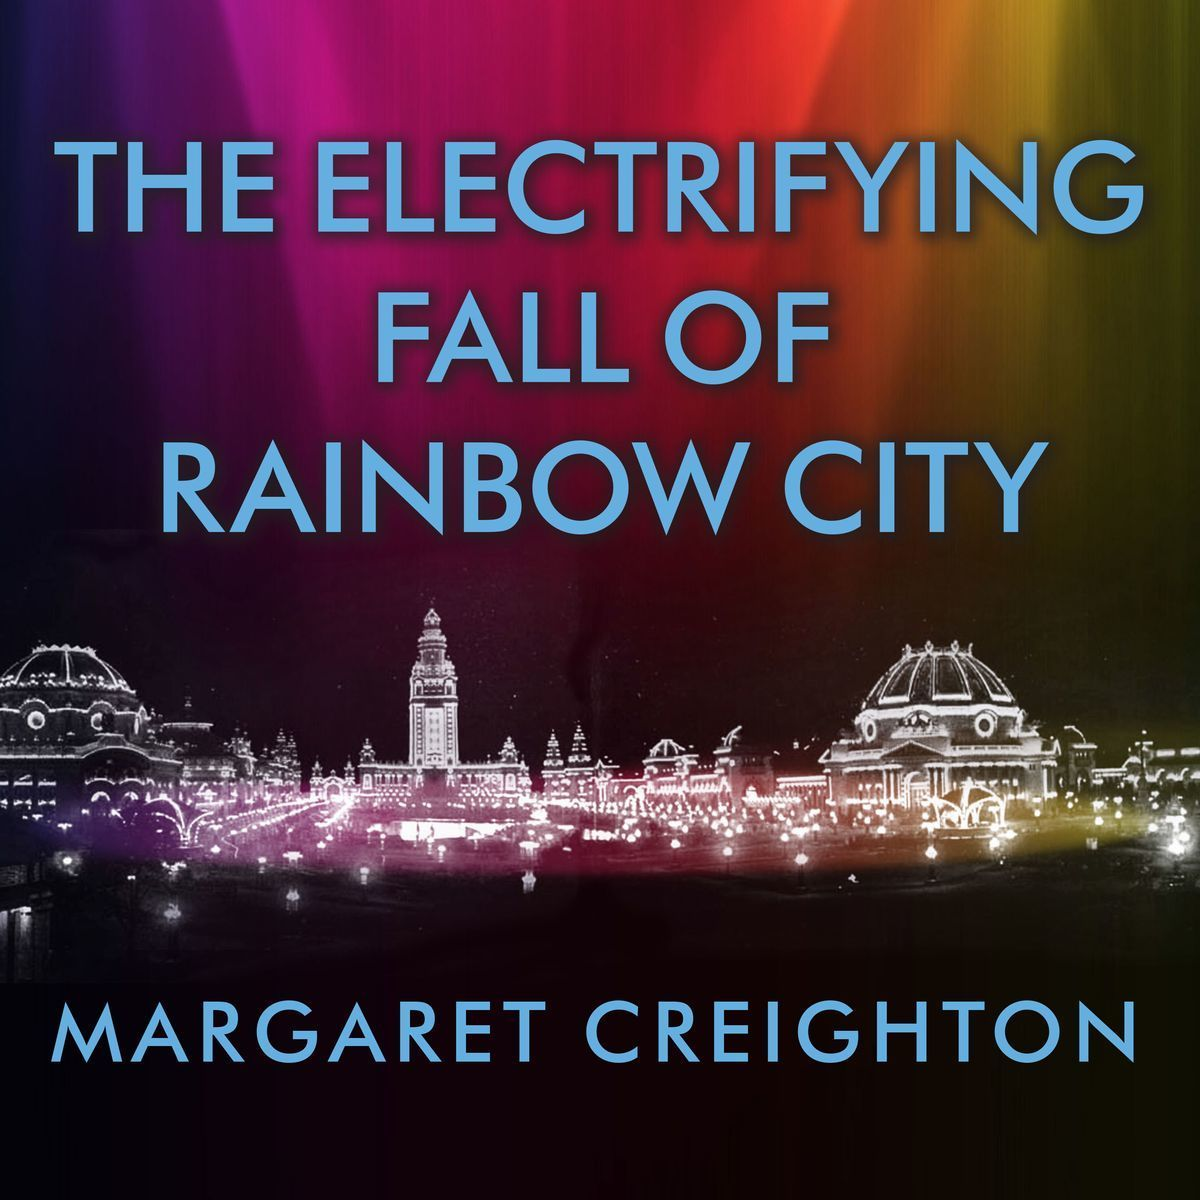 Printable The Electrifying Fall of Rainbow City: Spectacle and Assassination at the 1901 World's Fair Audiobook Cover Art